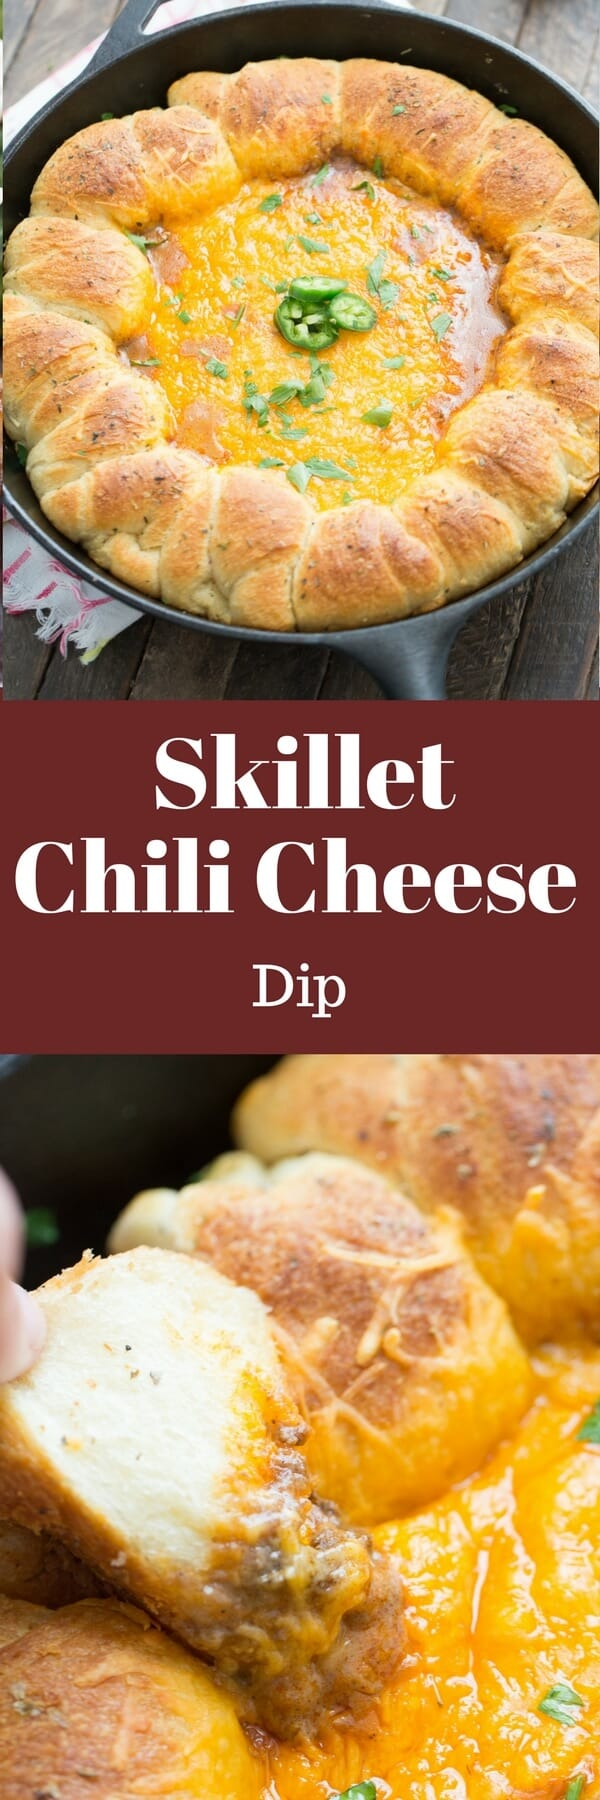 This chili cheese dip is going to go quickly! The buttery rolls make this cheesy dip easy to scoop and eat!